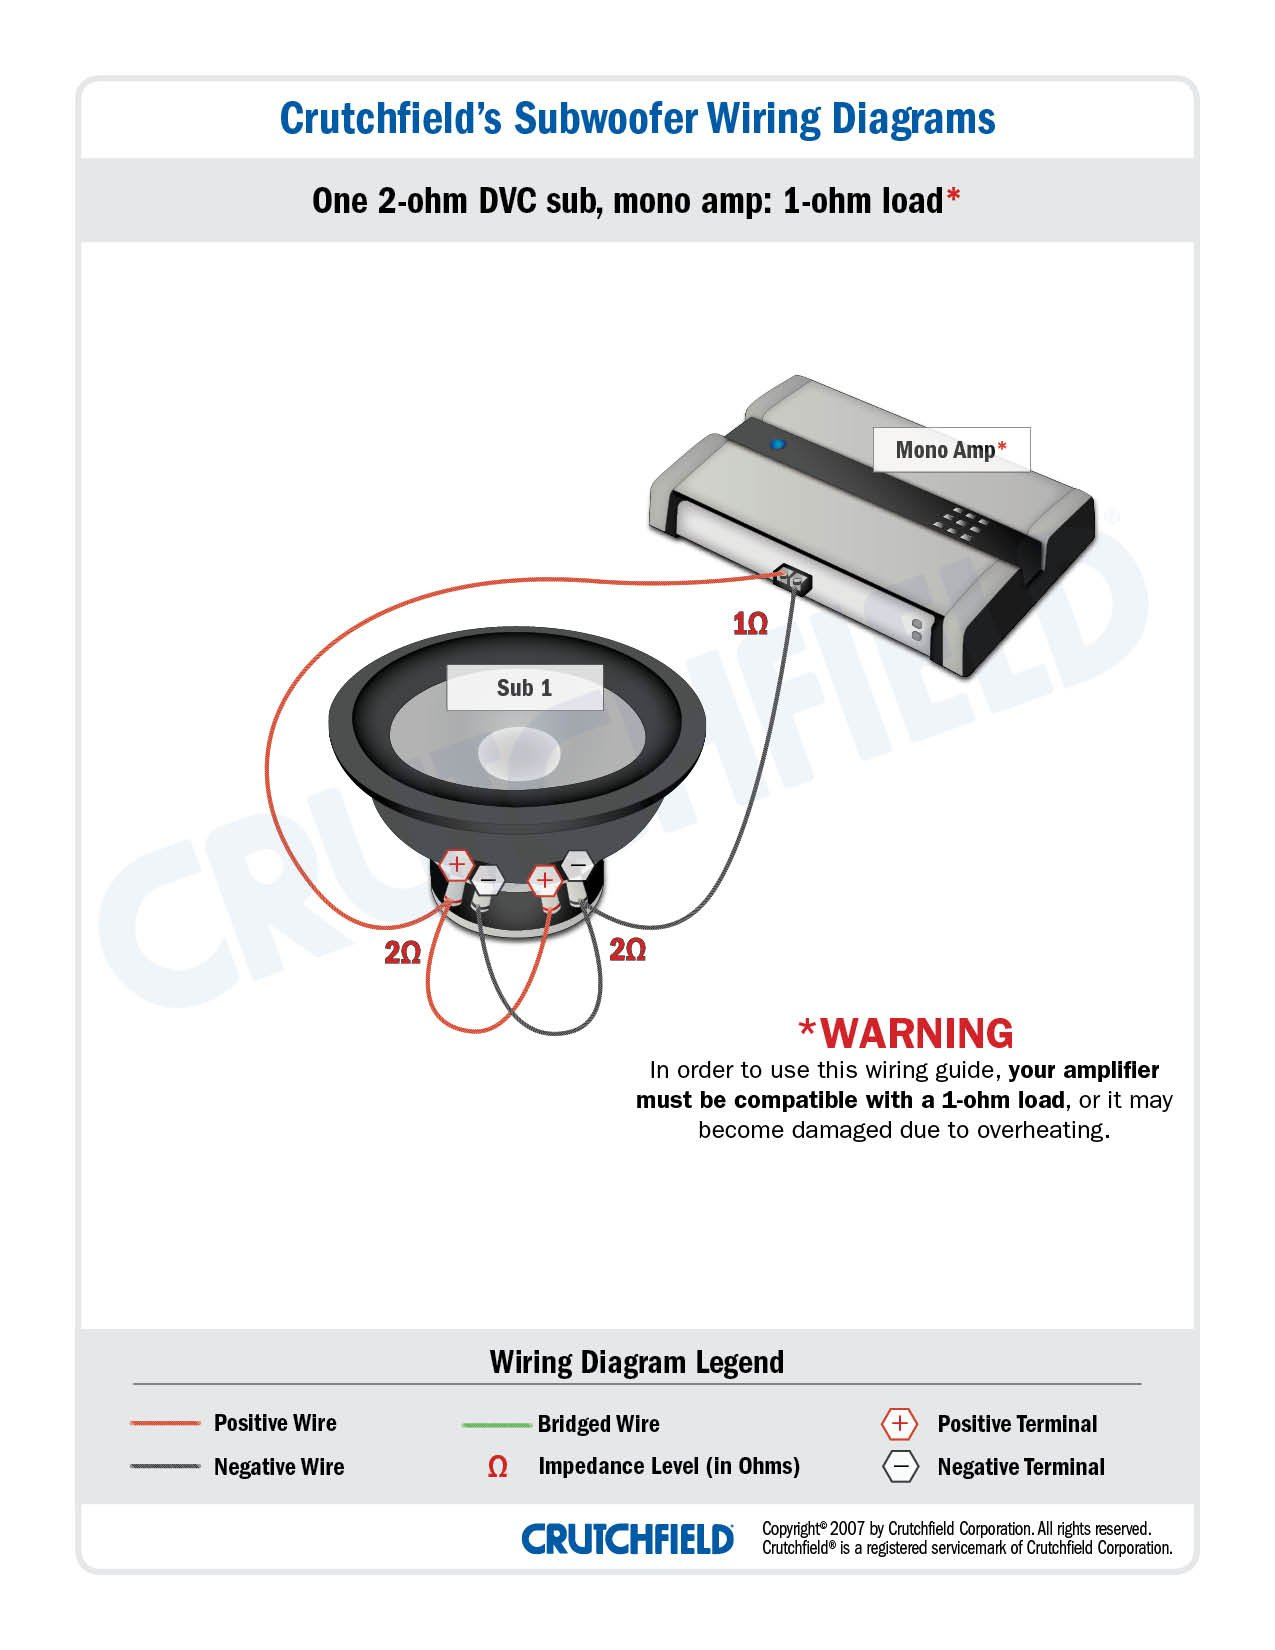 How To Wire 1 4ohm Subs To 2 Ohms: Subwoofer Wiring Diagrams u2014 How to Wire Your Subsrh:crutchfield.ca,Design